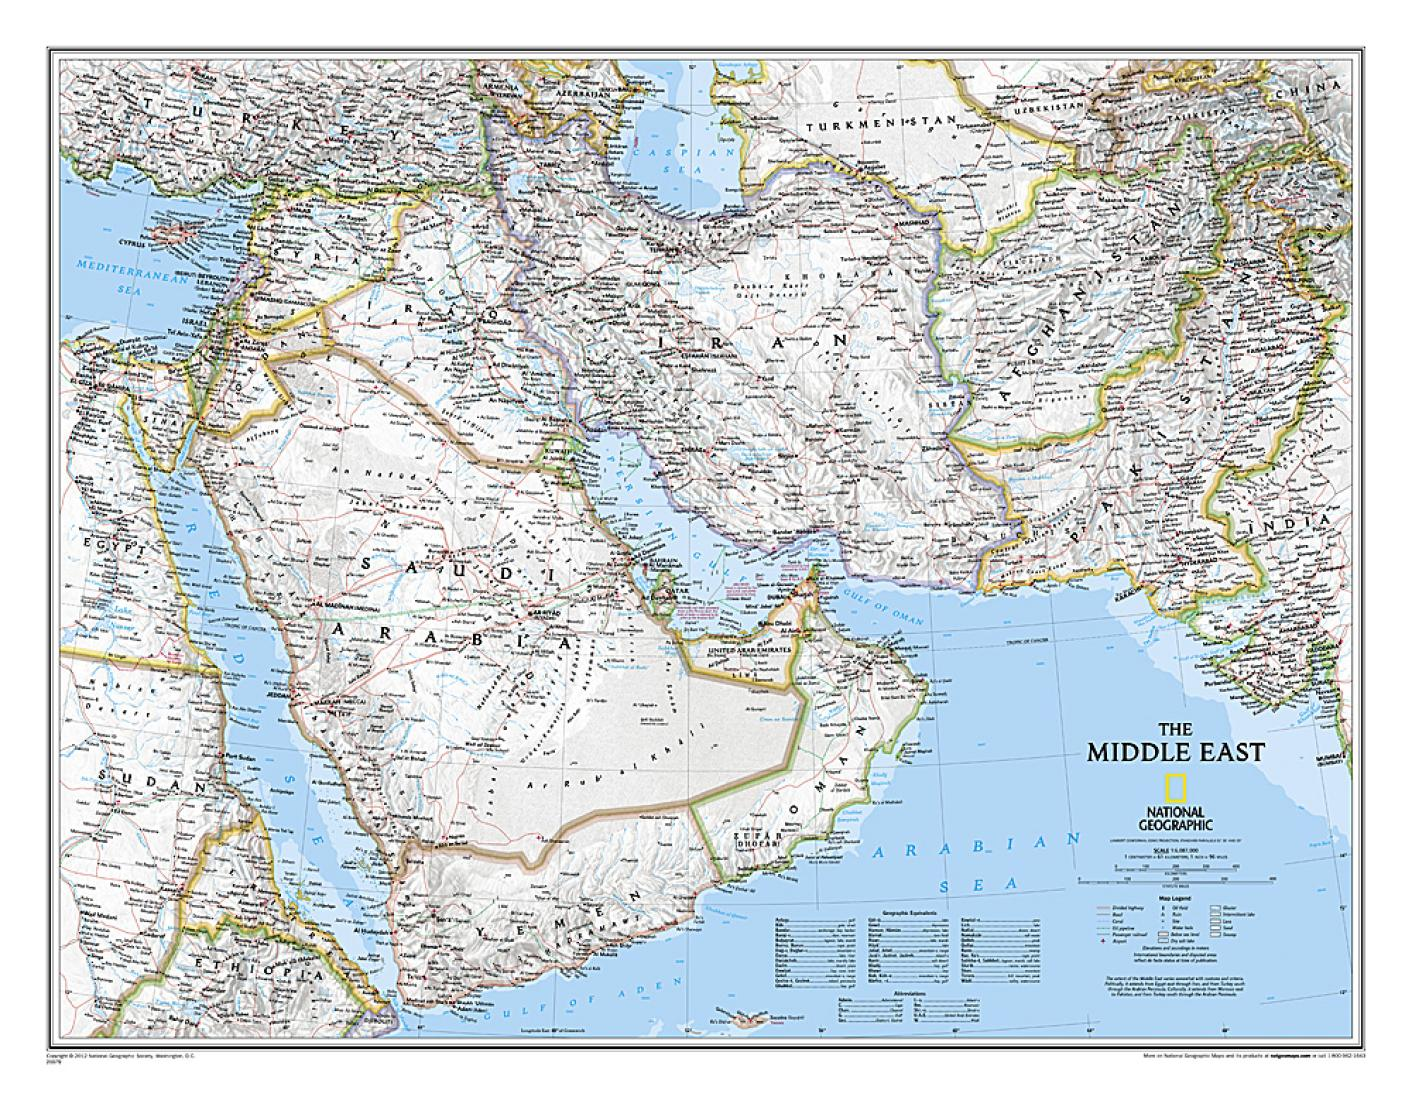 Middle East Sleeved By National Geographic Maps